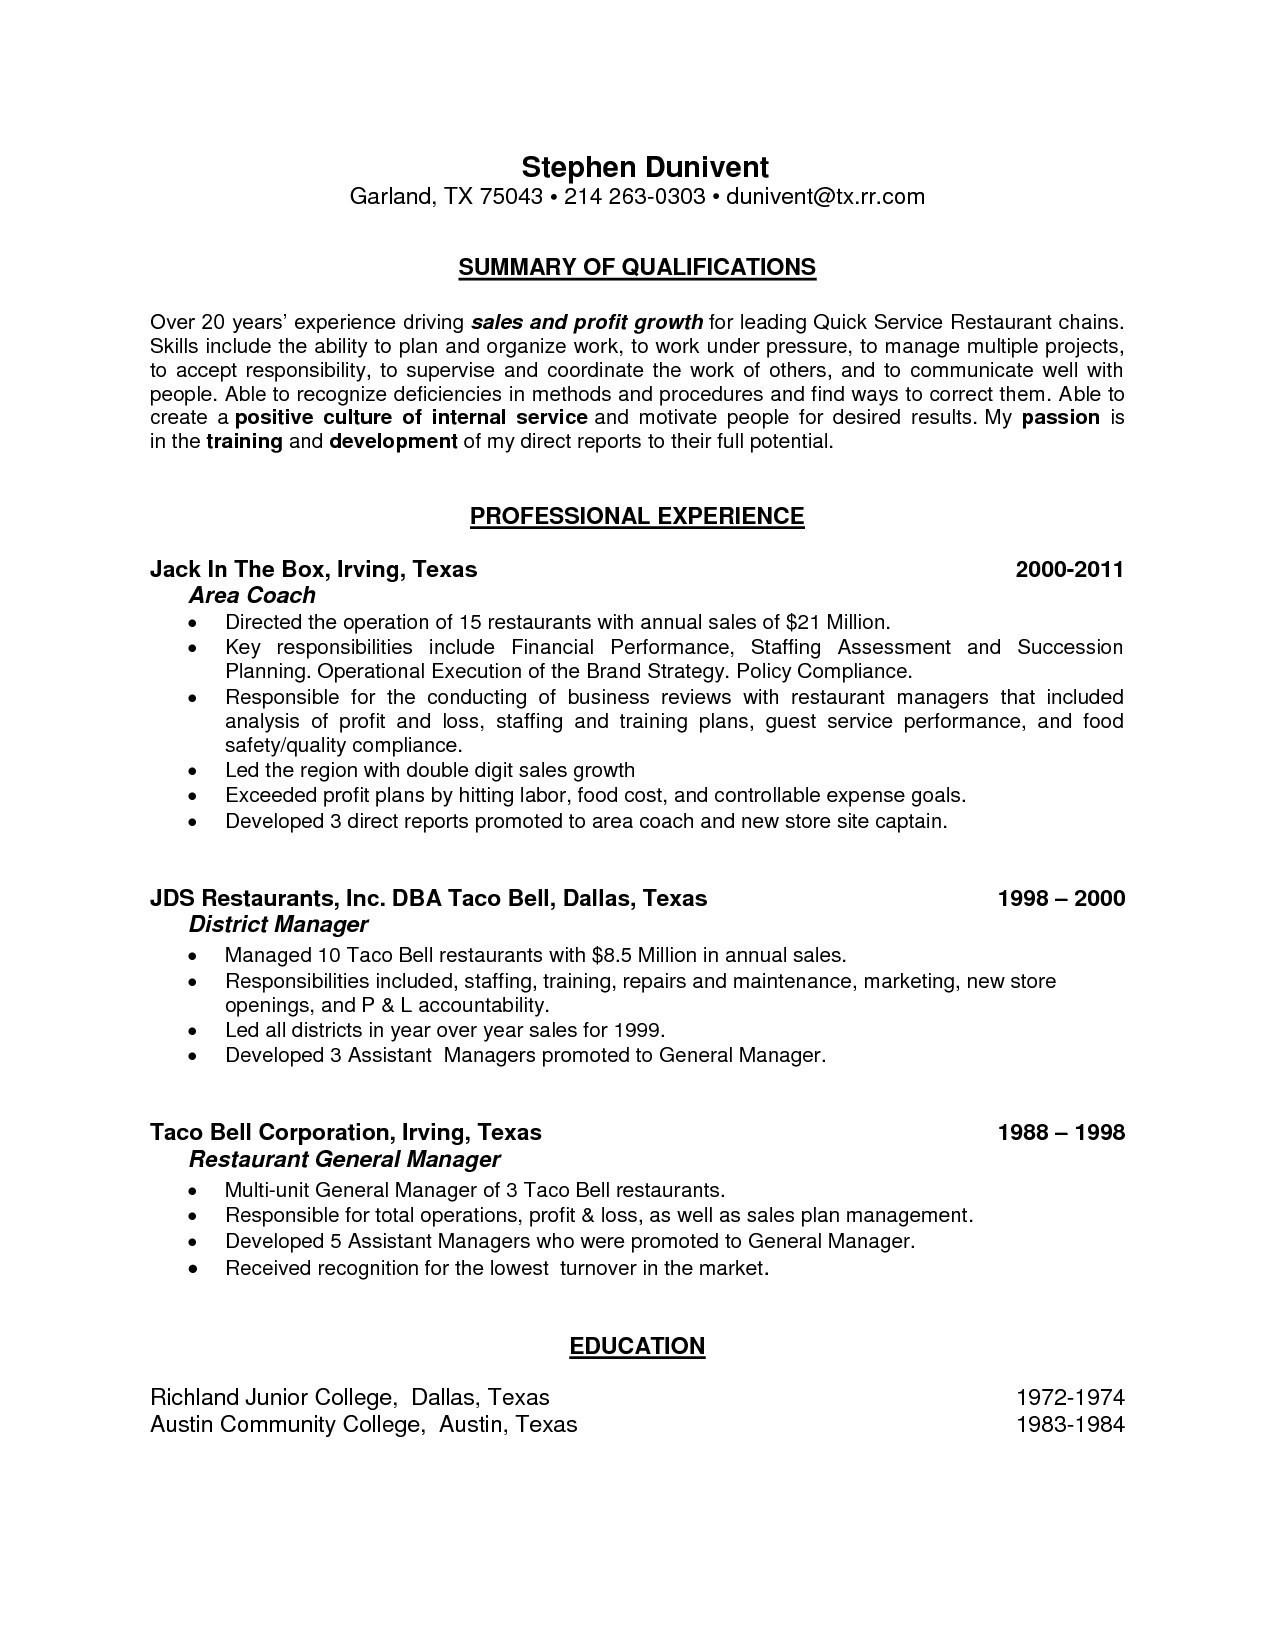 Examples Of Resume Skills - Skills Summary Resume Sample Fresh Resume Samples Skills Fresh